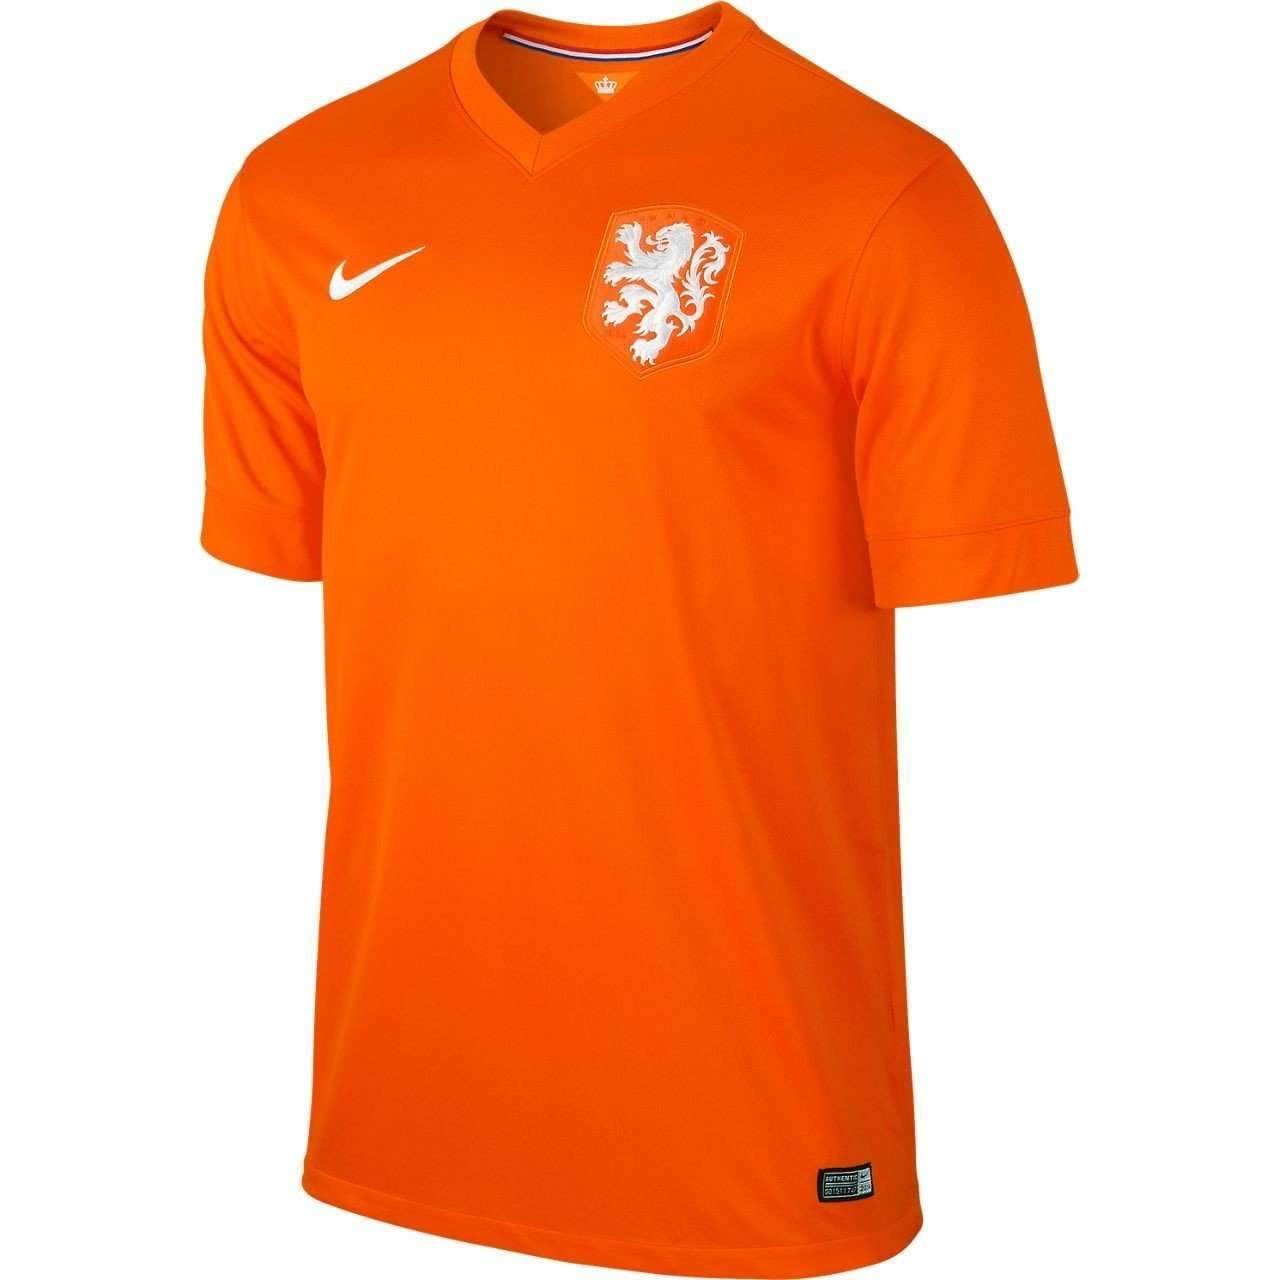 best loved c4cba 65904 Netherlands national football team Nike Home WC 2014 Retro Classic Camiseta  FÚTBOL SOCCER KIT CALCIO SHIRT JERSEY FUSSBALL CAMISA TRIKOT MAILLOT ...